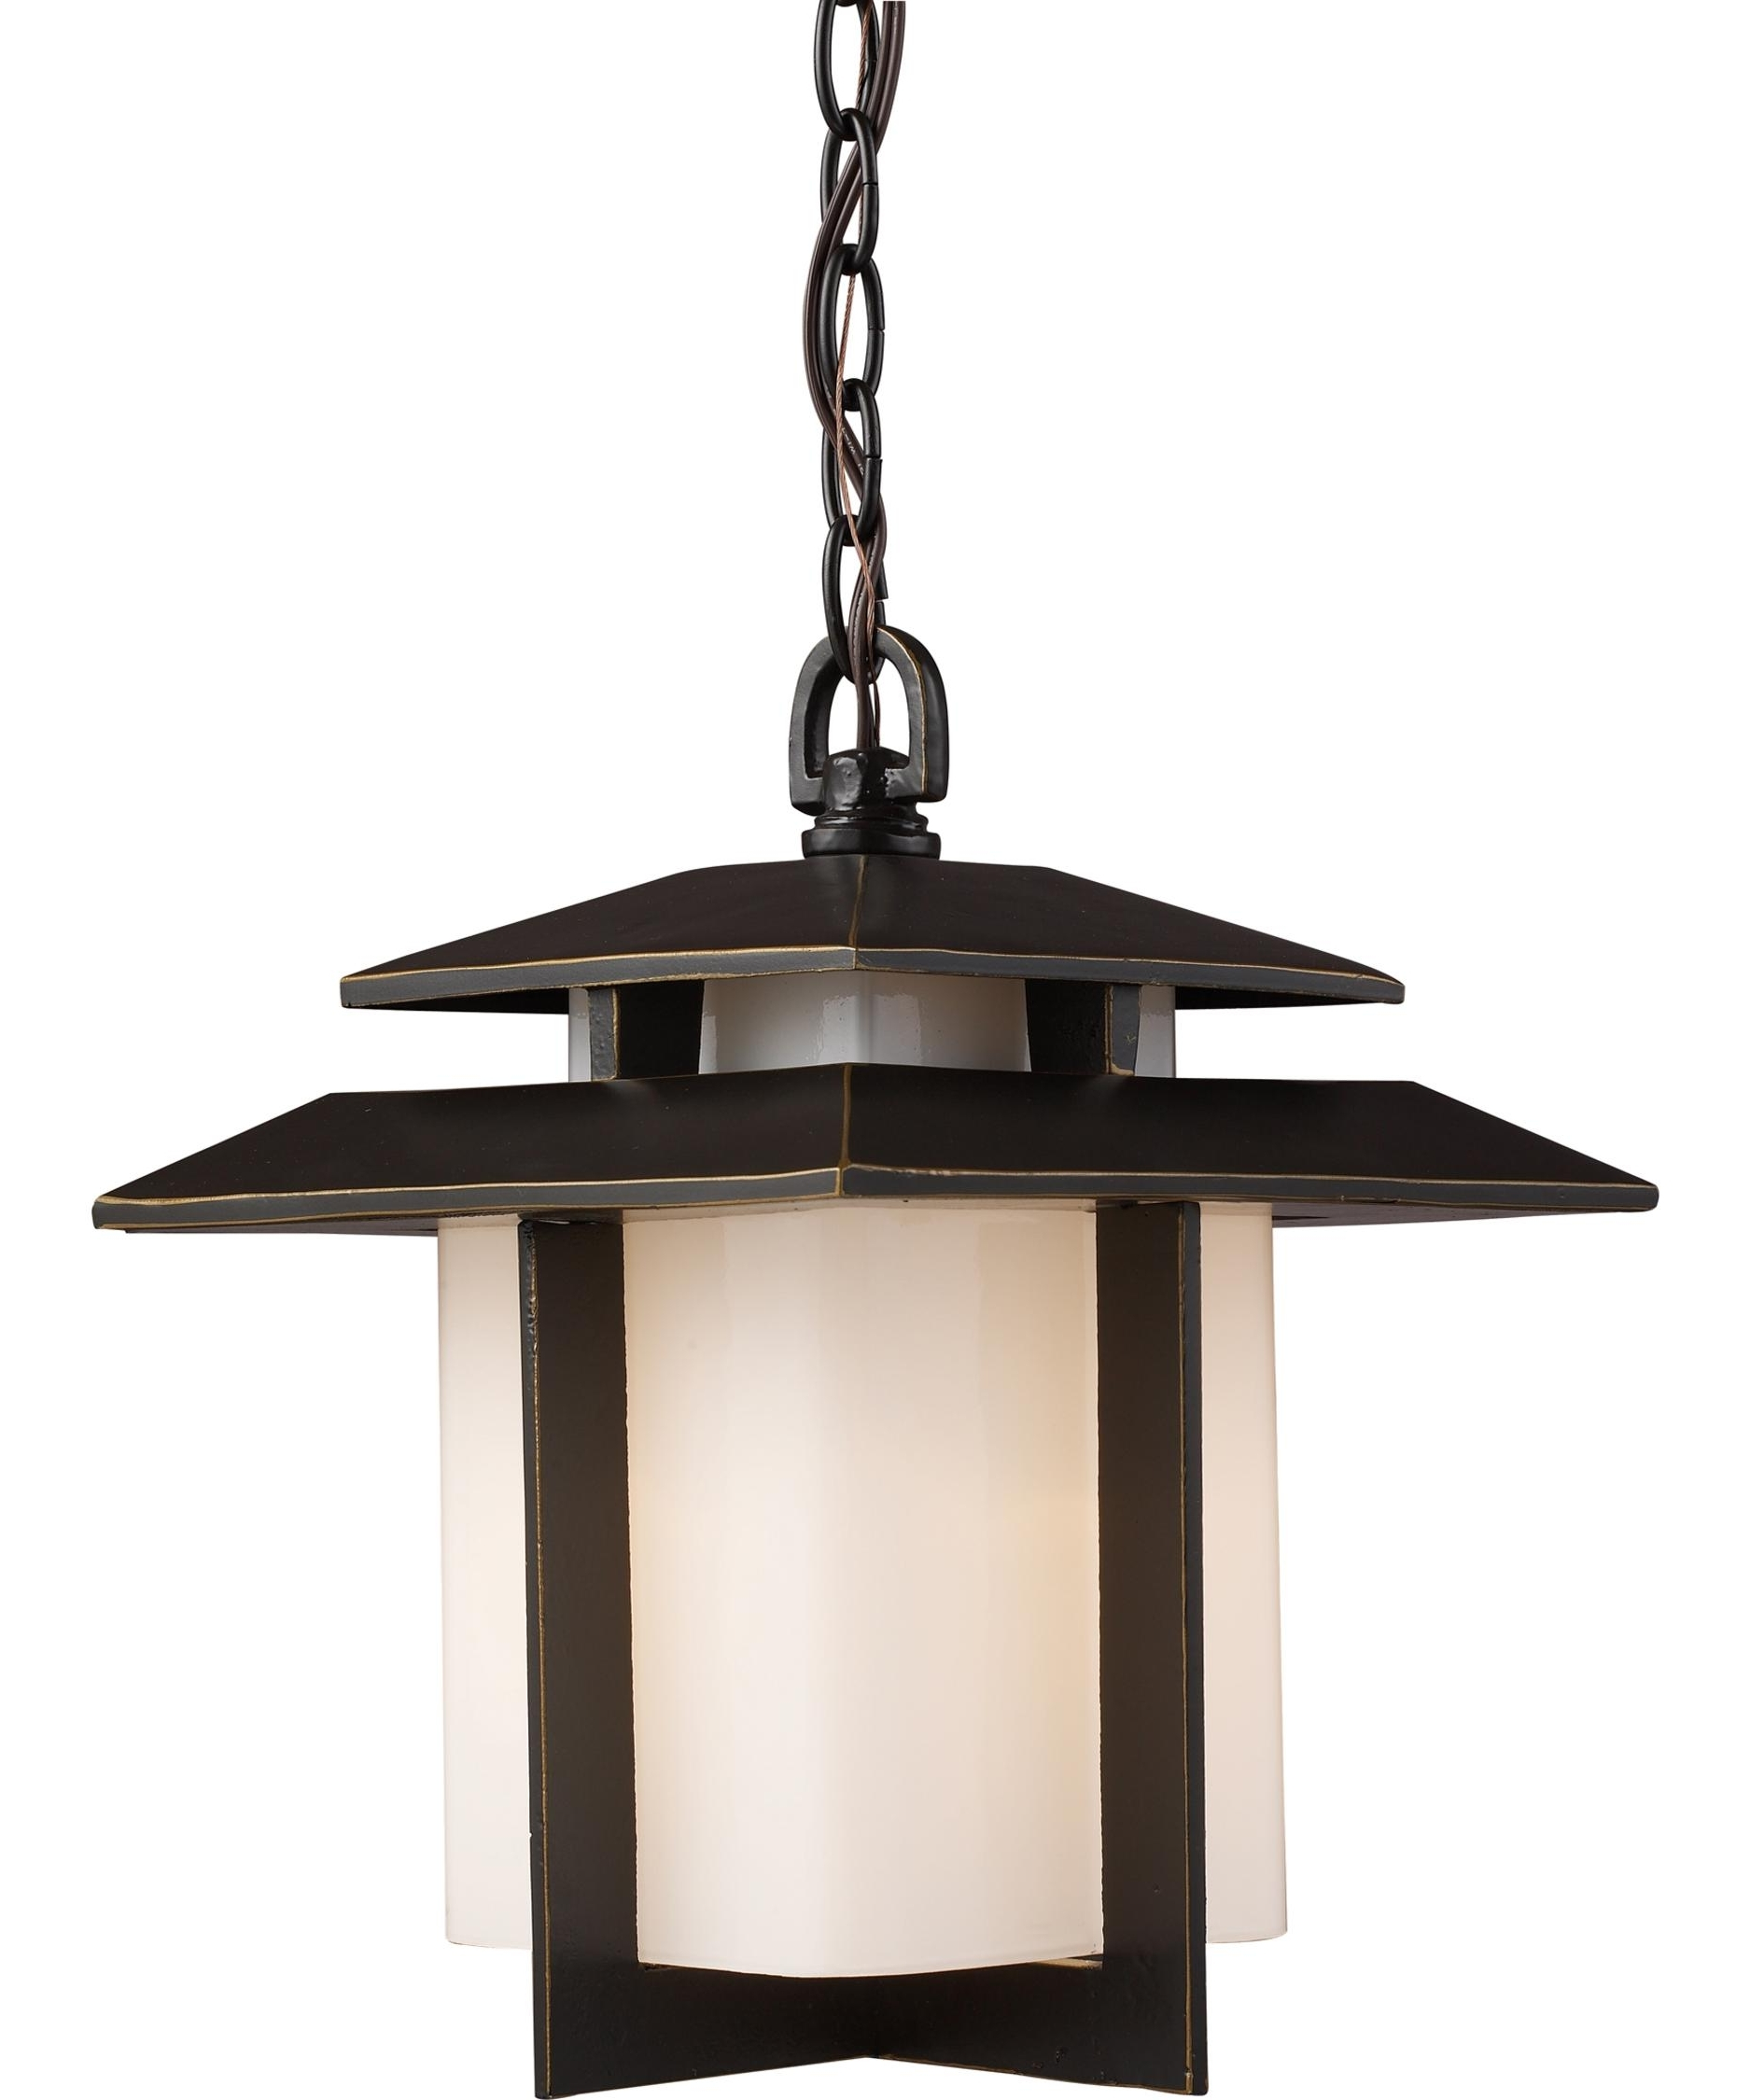 Preferred Elk Lighting 42172 1 Kanso 10 Inch Wide 1 Light Outdoor Hanging With Outdoor Lighting Japanese Lanterns (View 6 of 20)